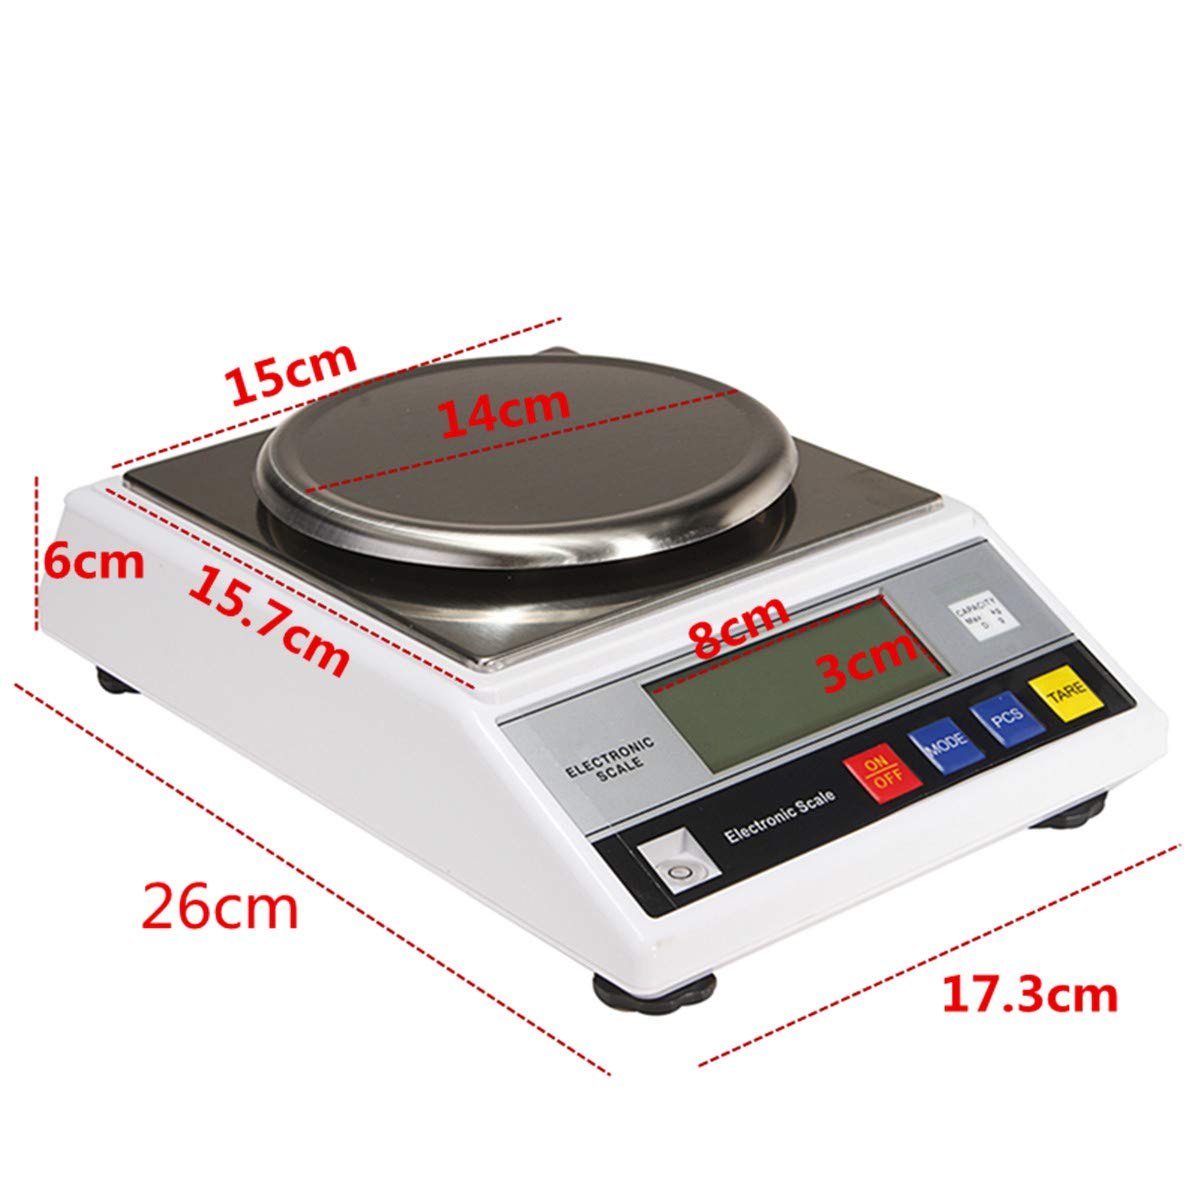 CGOLDENWALL High Precision Digital Accurate Analytical Electronic Balance Lab Scale Laboratory Weighing Balance Industrial Scale with Counting Function CE 14cm Large Weighing Pan 0.01g 2000g, 0.01g